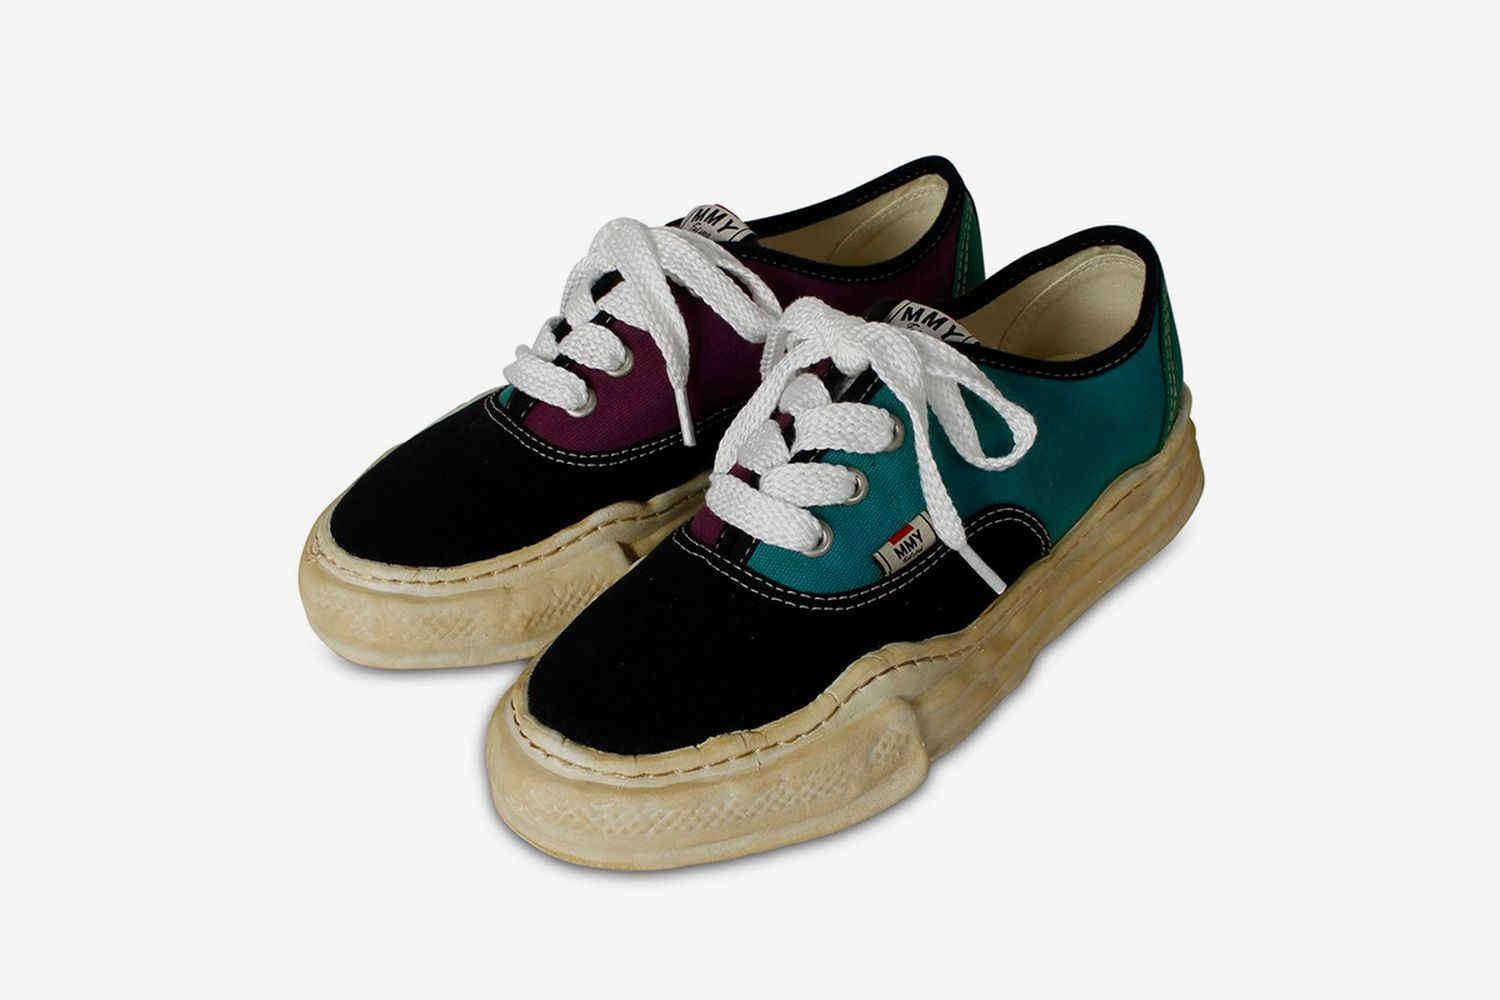 Original Sole Overdyed Lowcut Sneakers